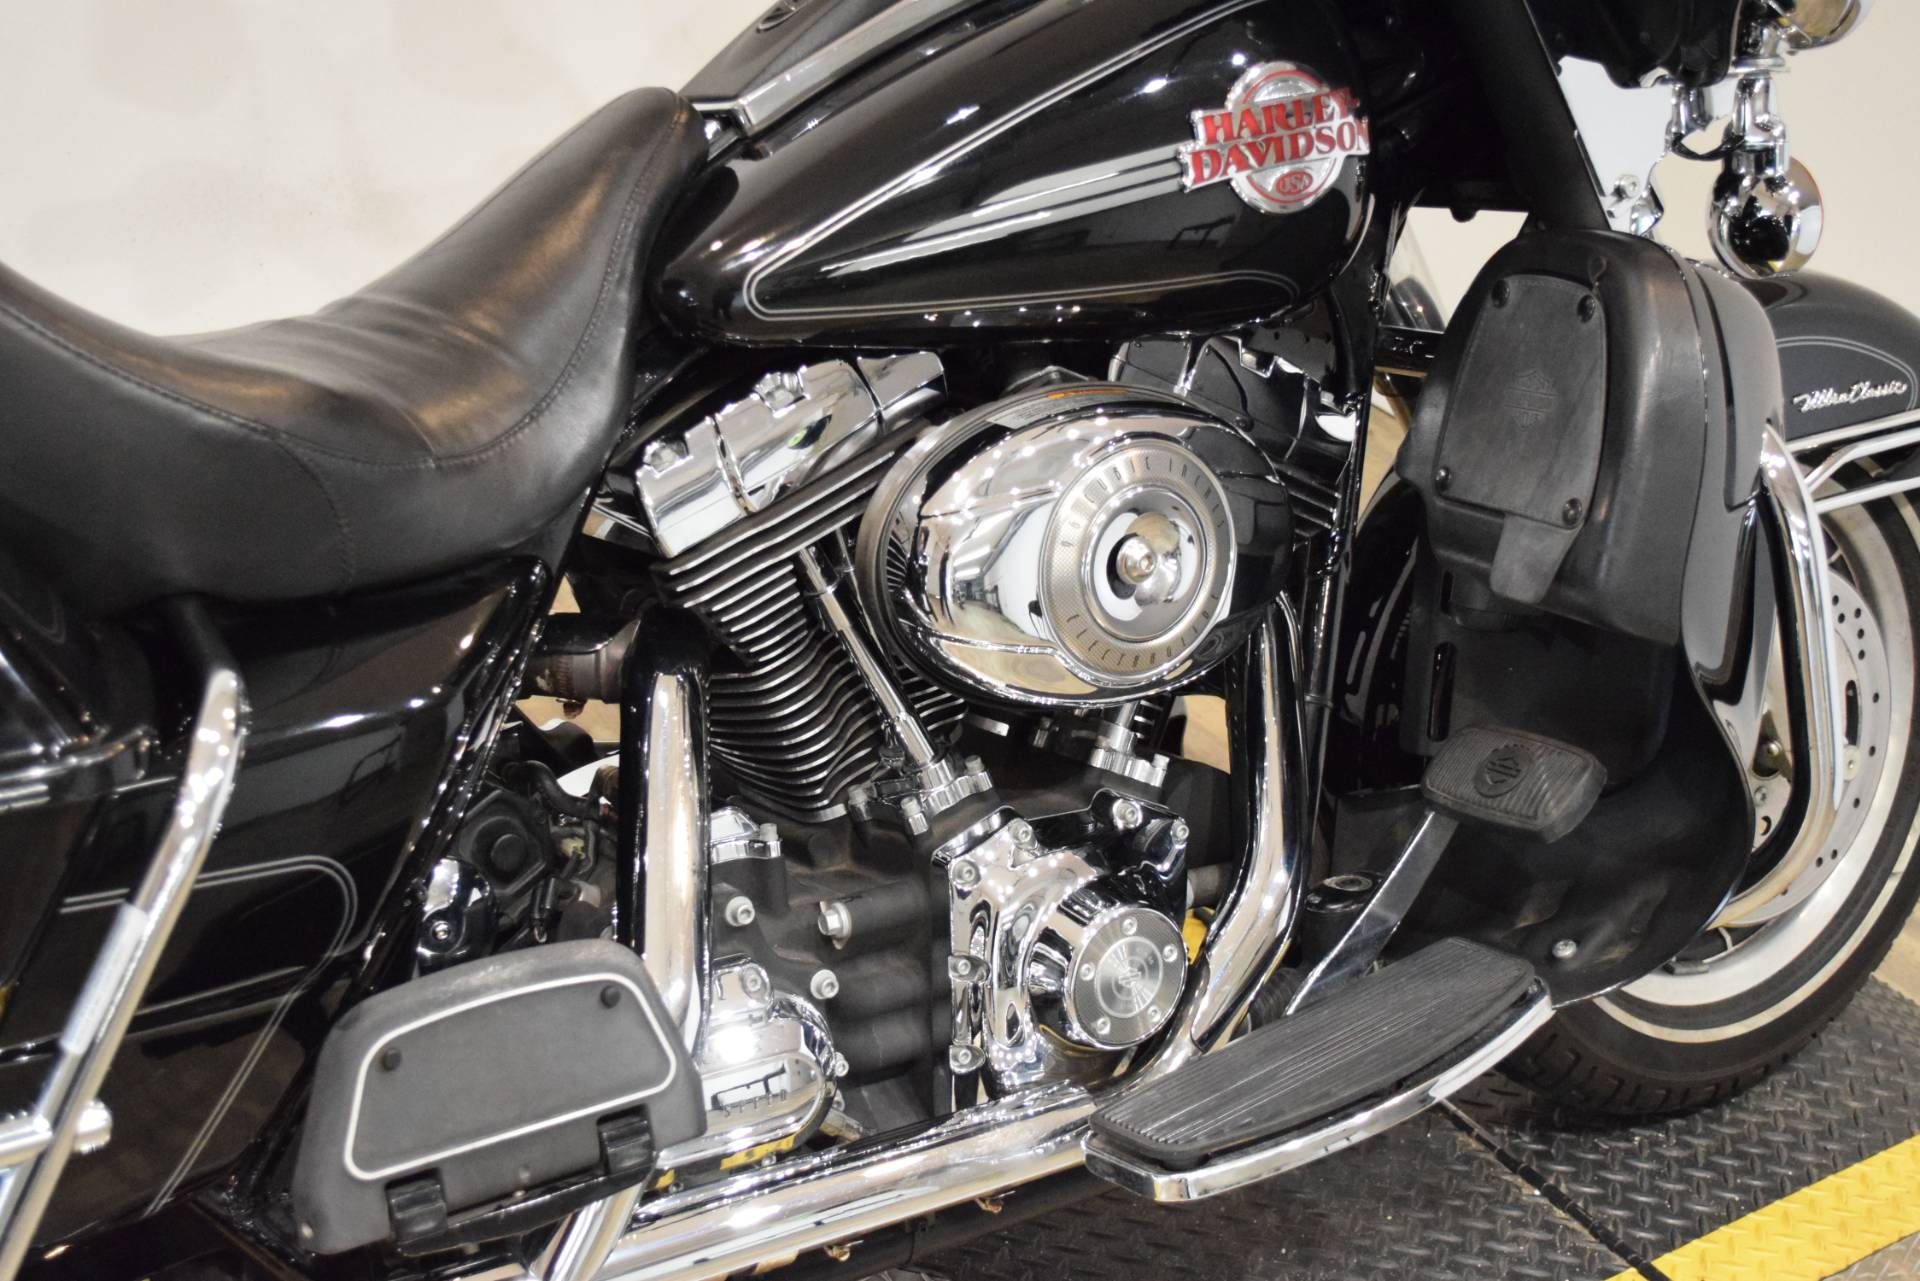 2007 Harley-Davidson FLHTC ULTRA CLASSIC in Wauconda, Illinois - Photo 7